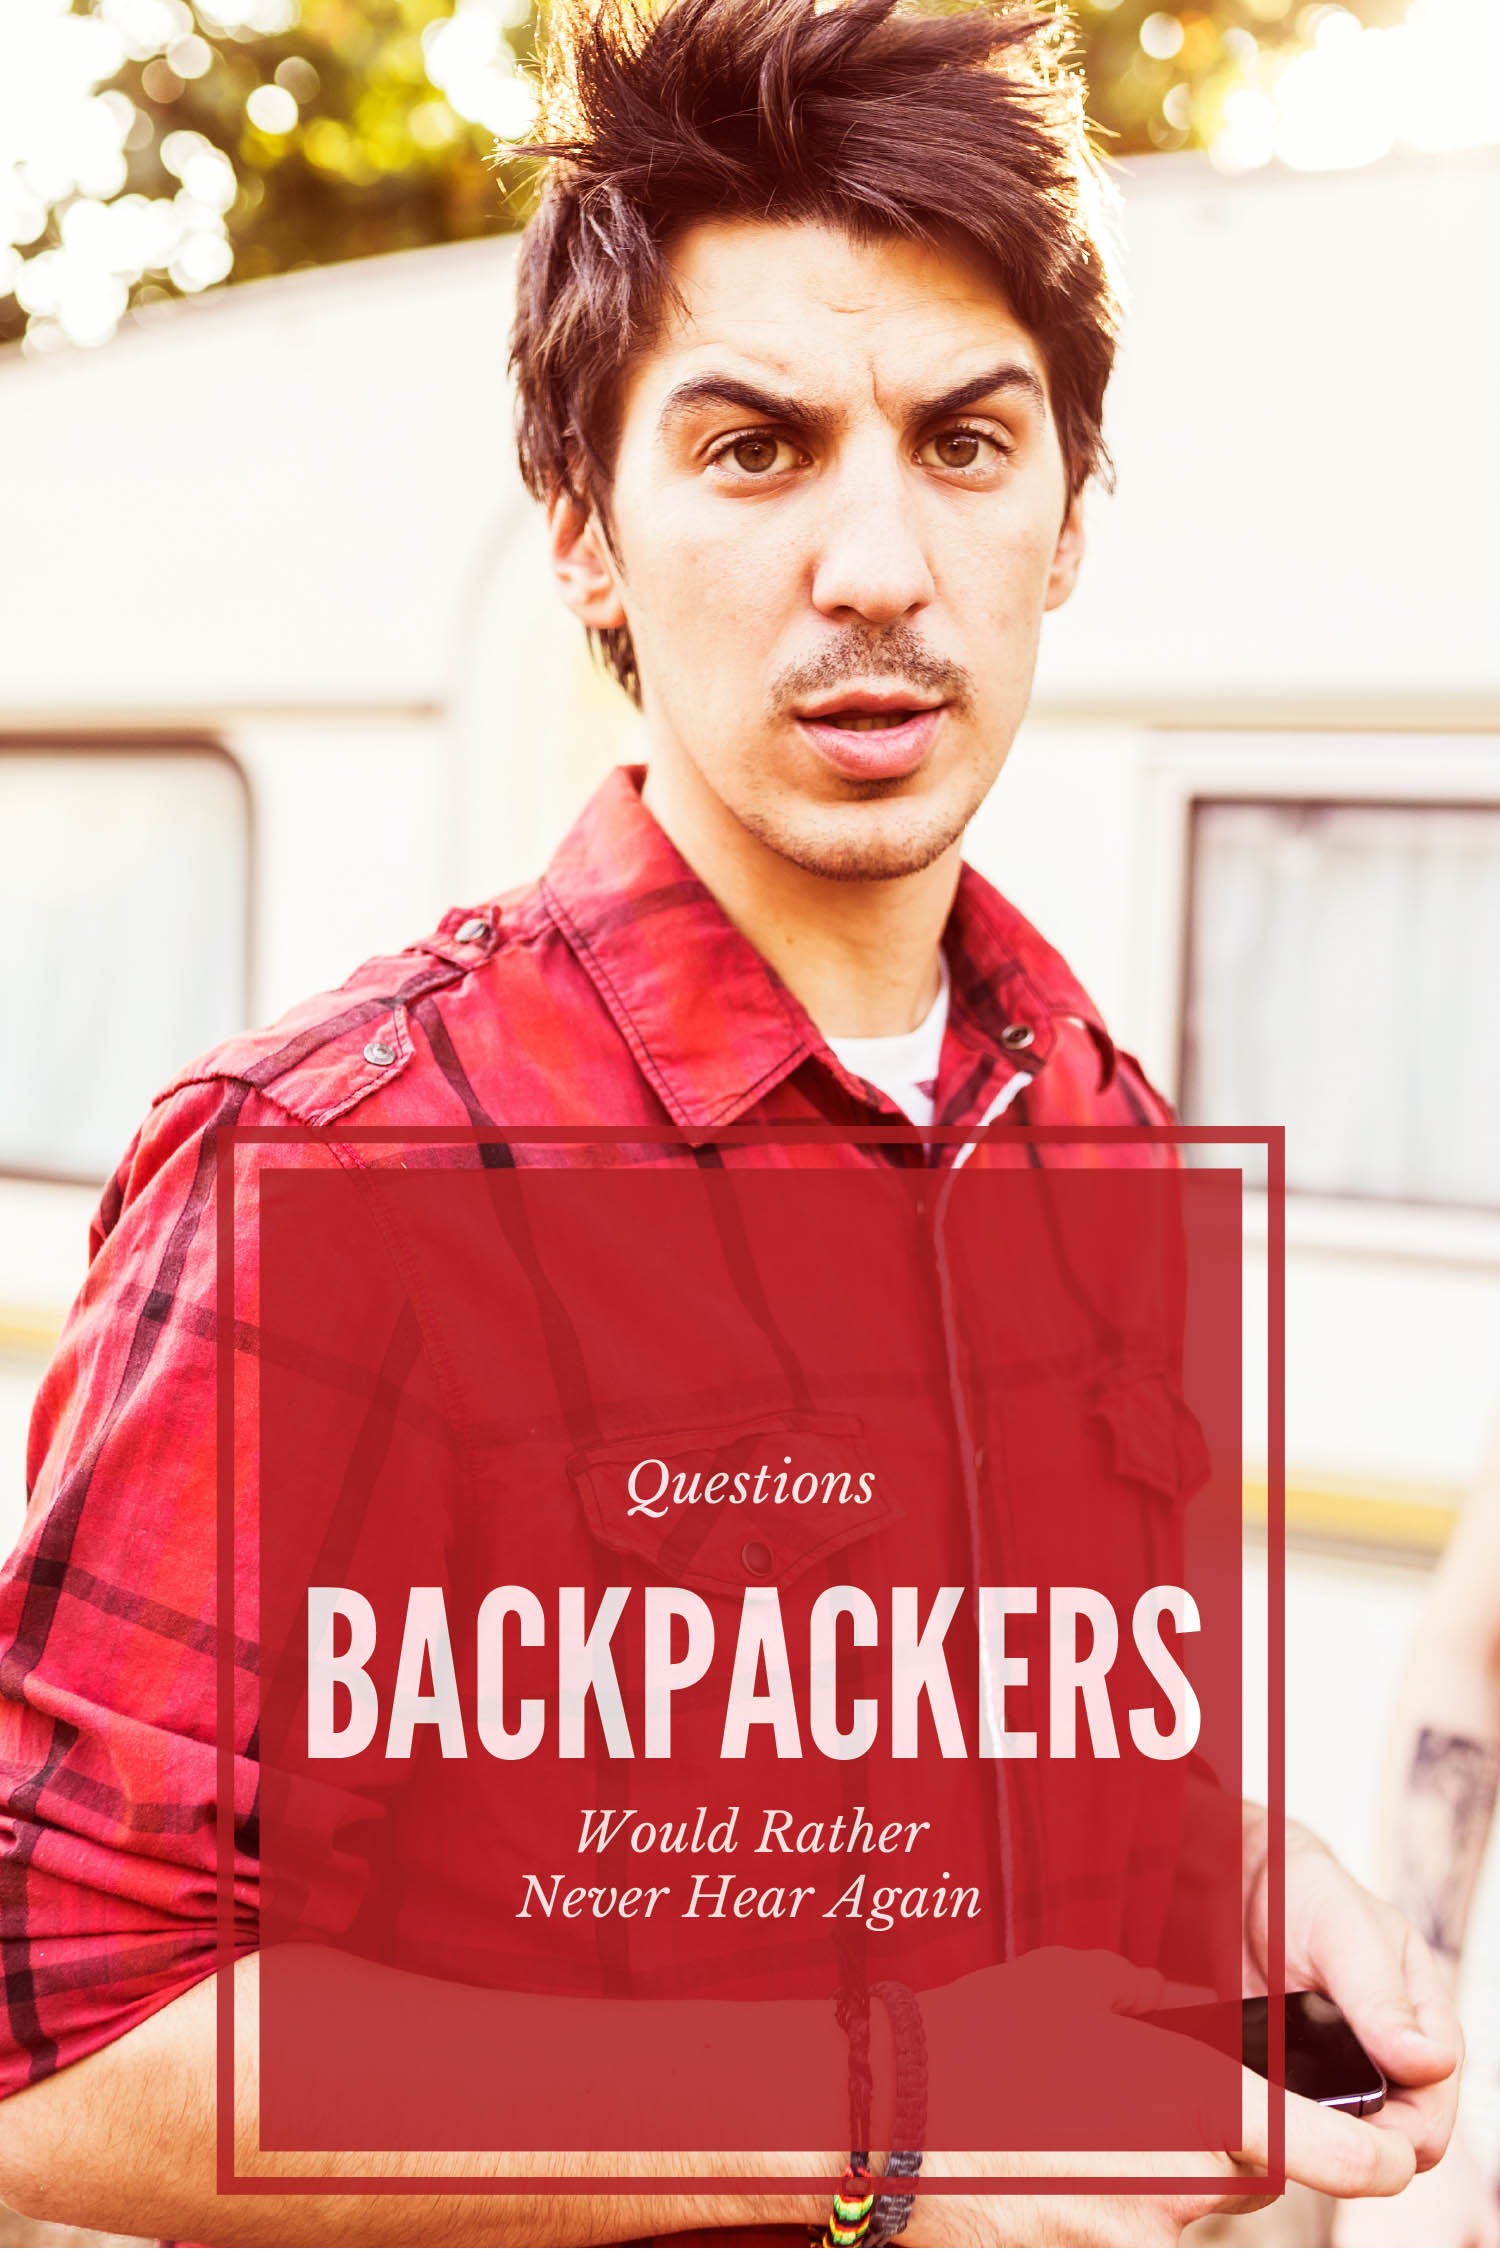 Questions Backpackers Would Rather Never Hear Again